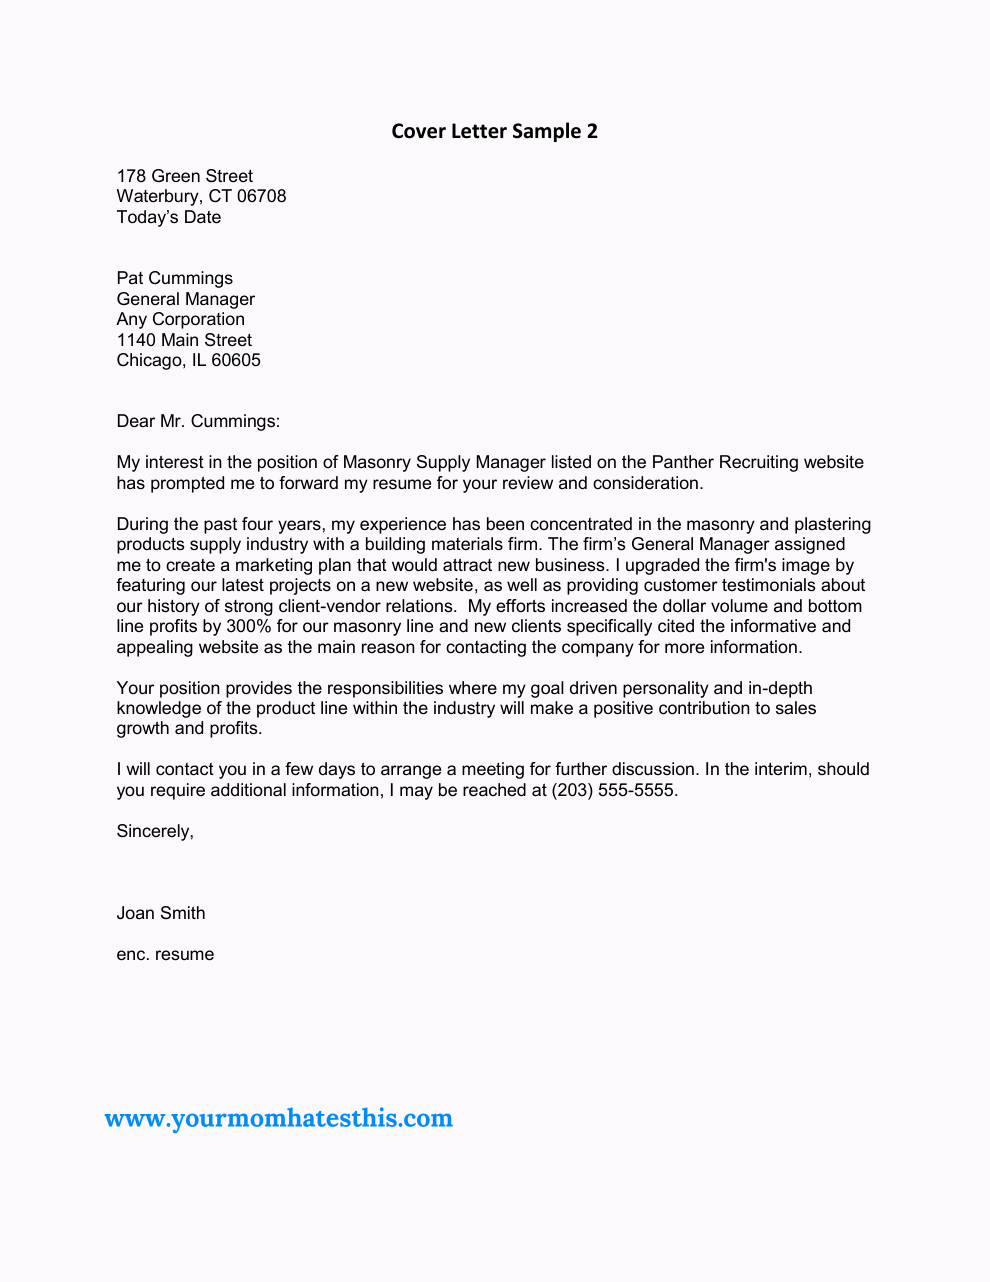 Cover Letter for Manager Position Awesome Download Cover Letter Samples